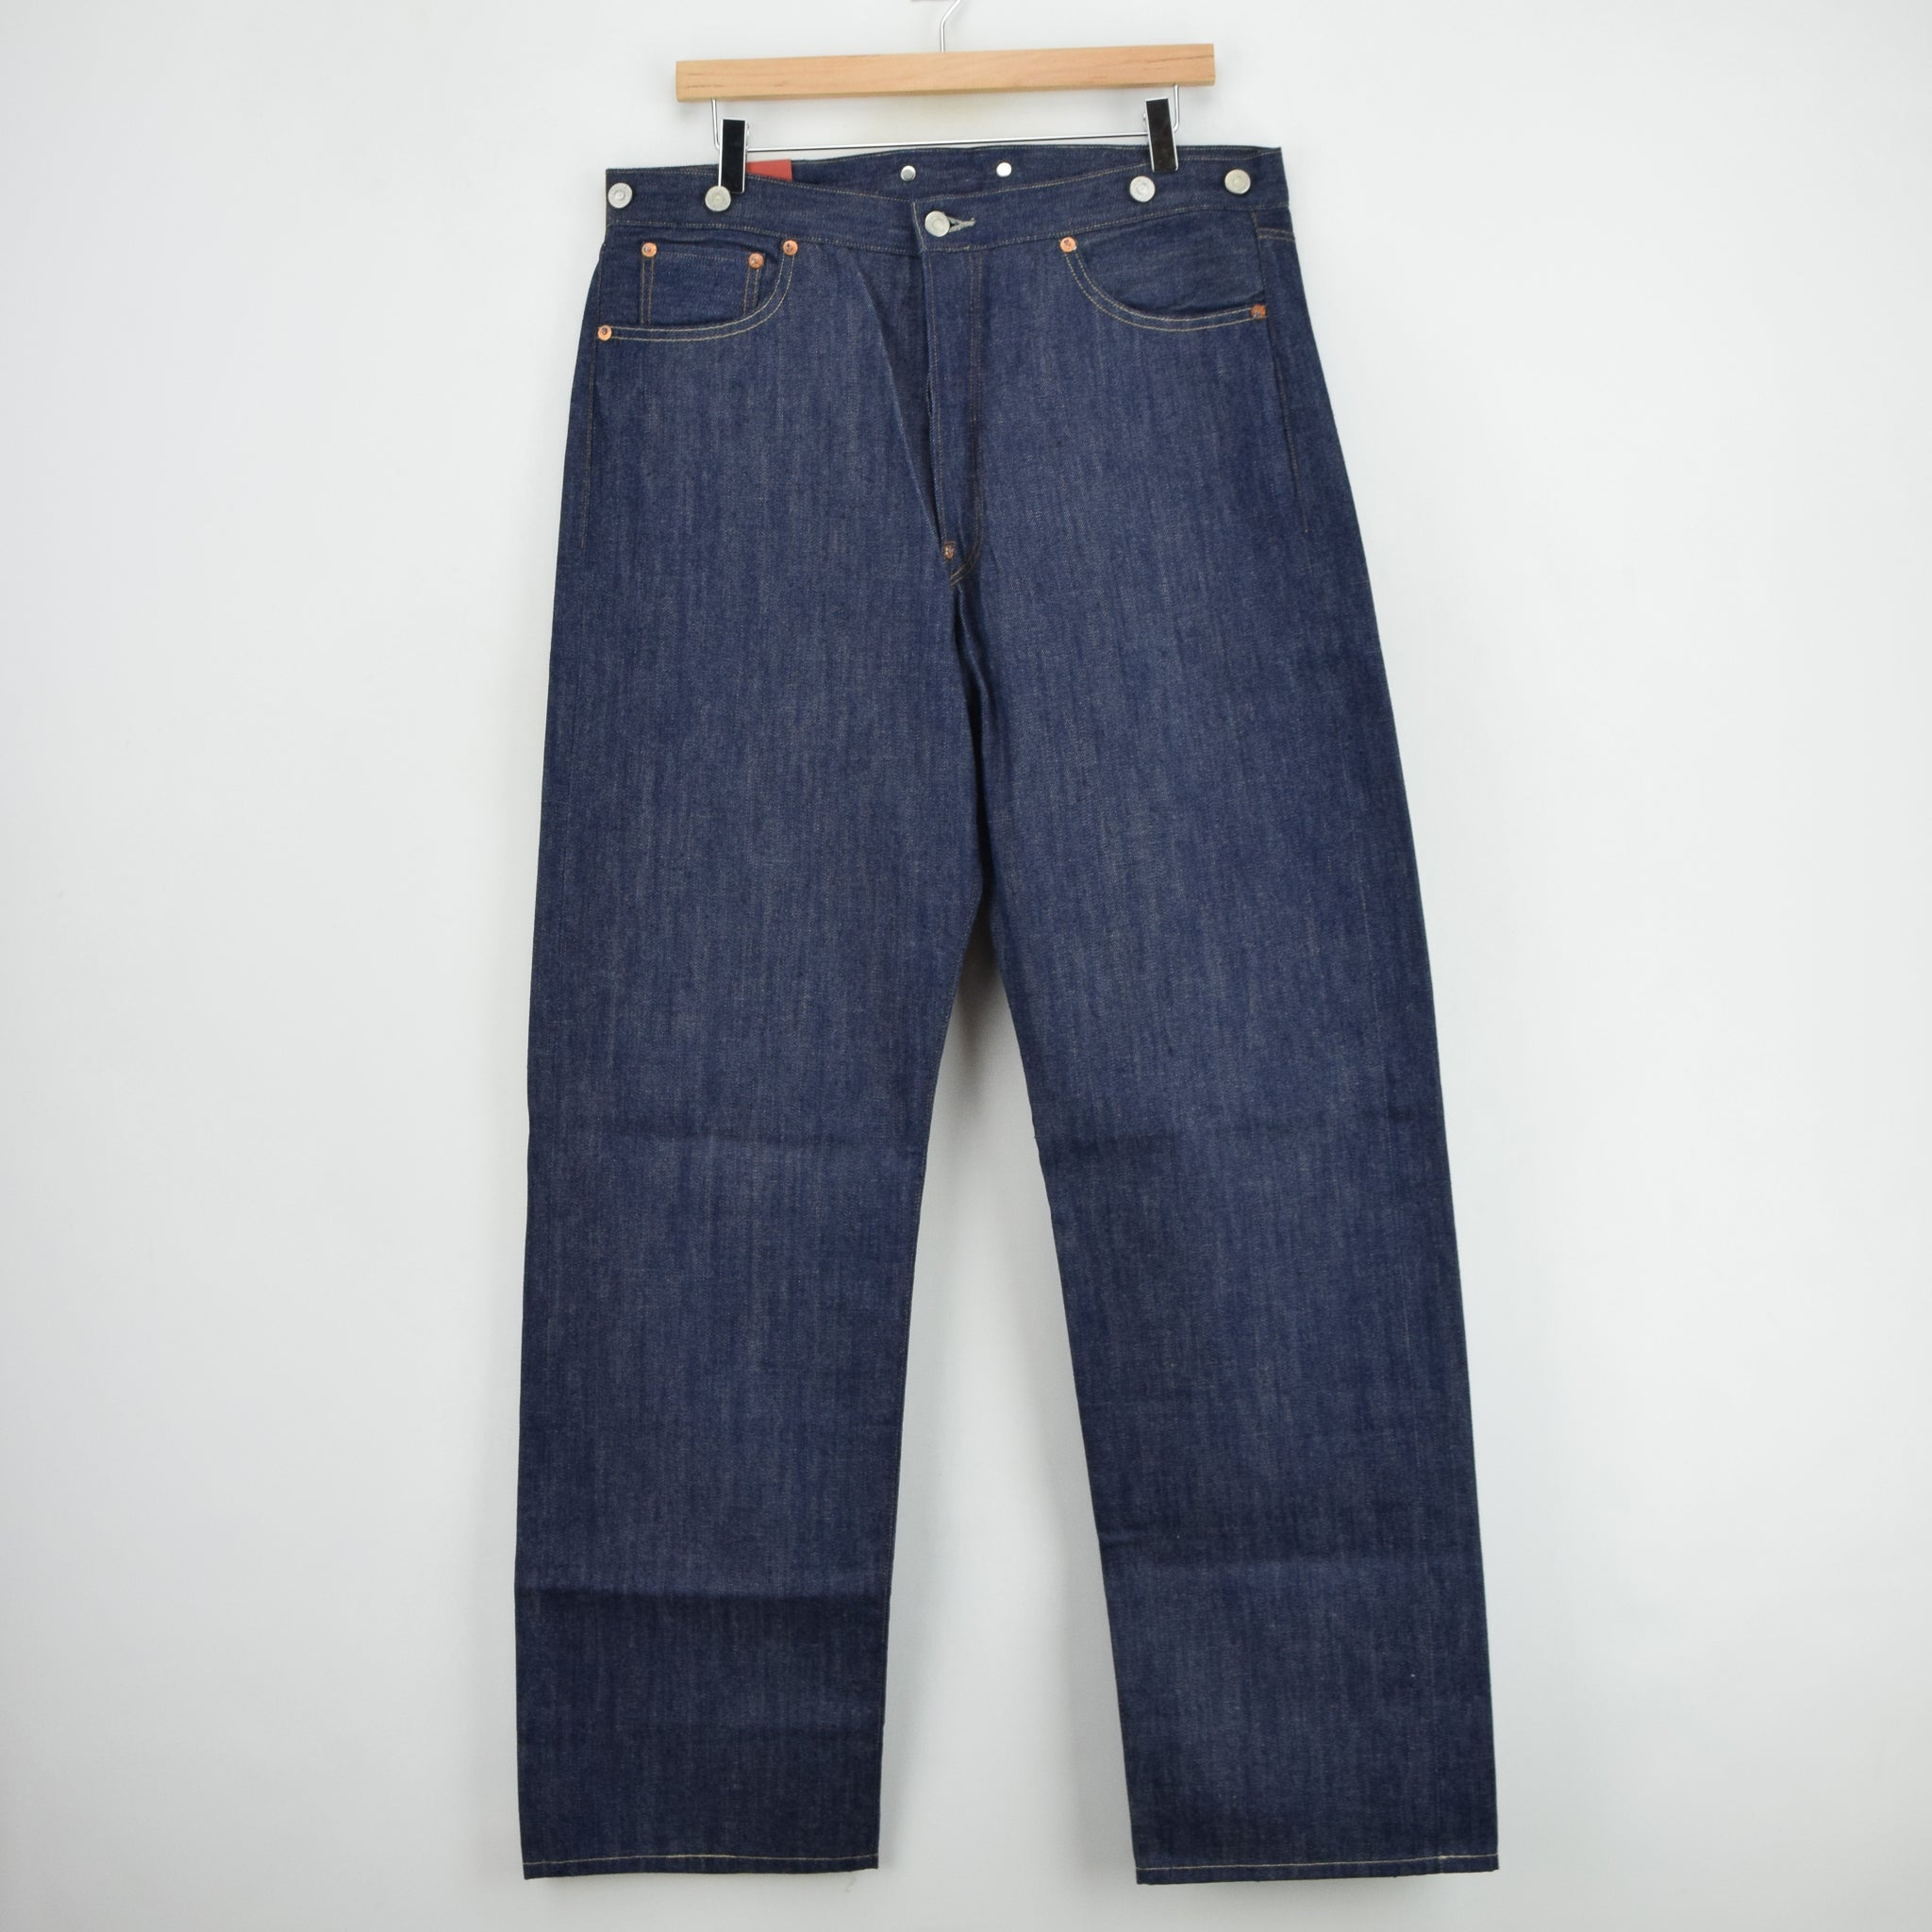 LVC Levi's Vintage Clothing 501 xx 1915 Shrink to Fit Selvedge Jeans 34 W 32 L front